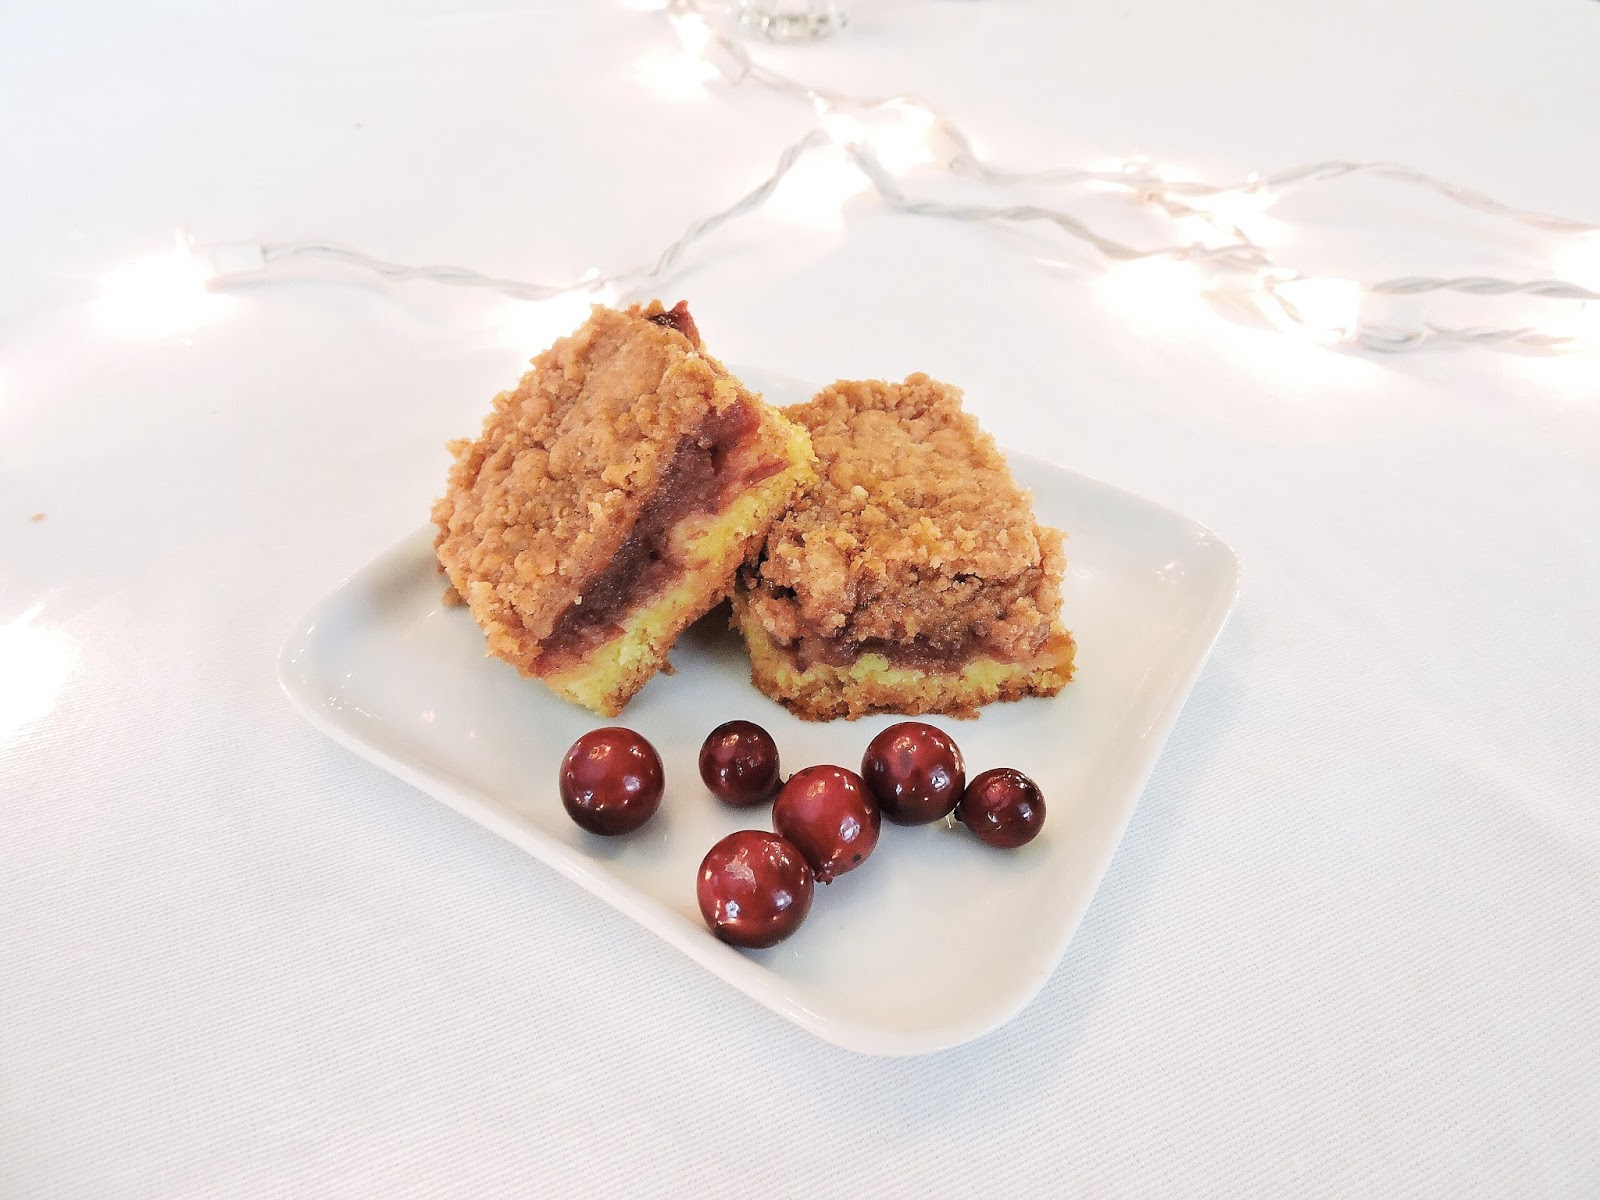 christmas ranberry relish sqaures dessert baking williams sonoma recipe sugarly